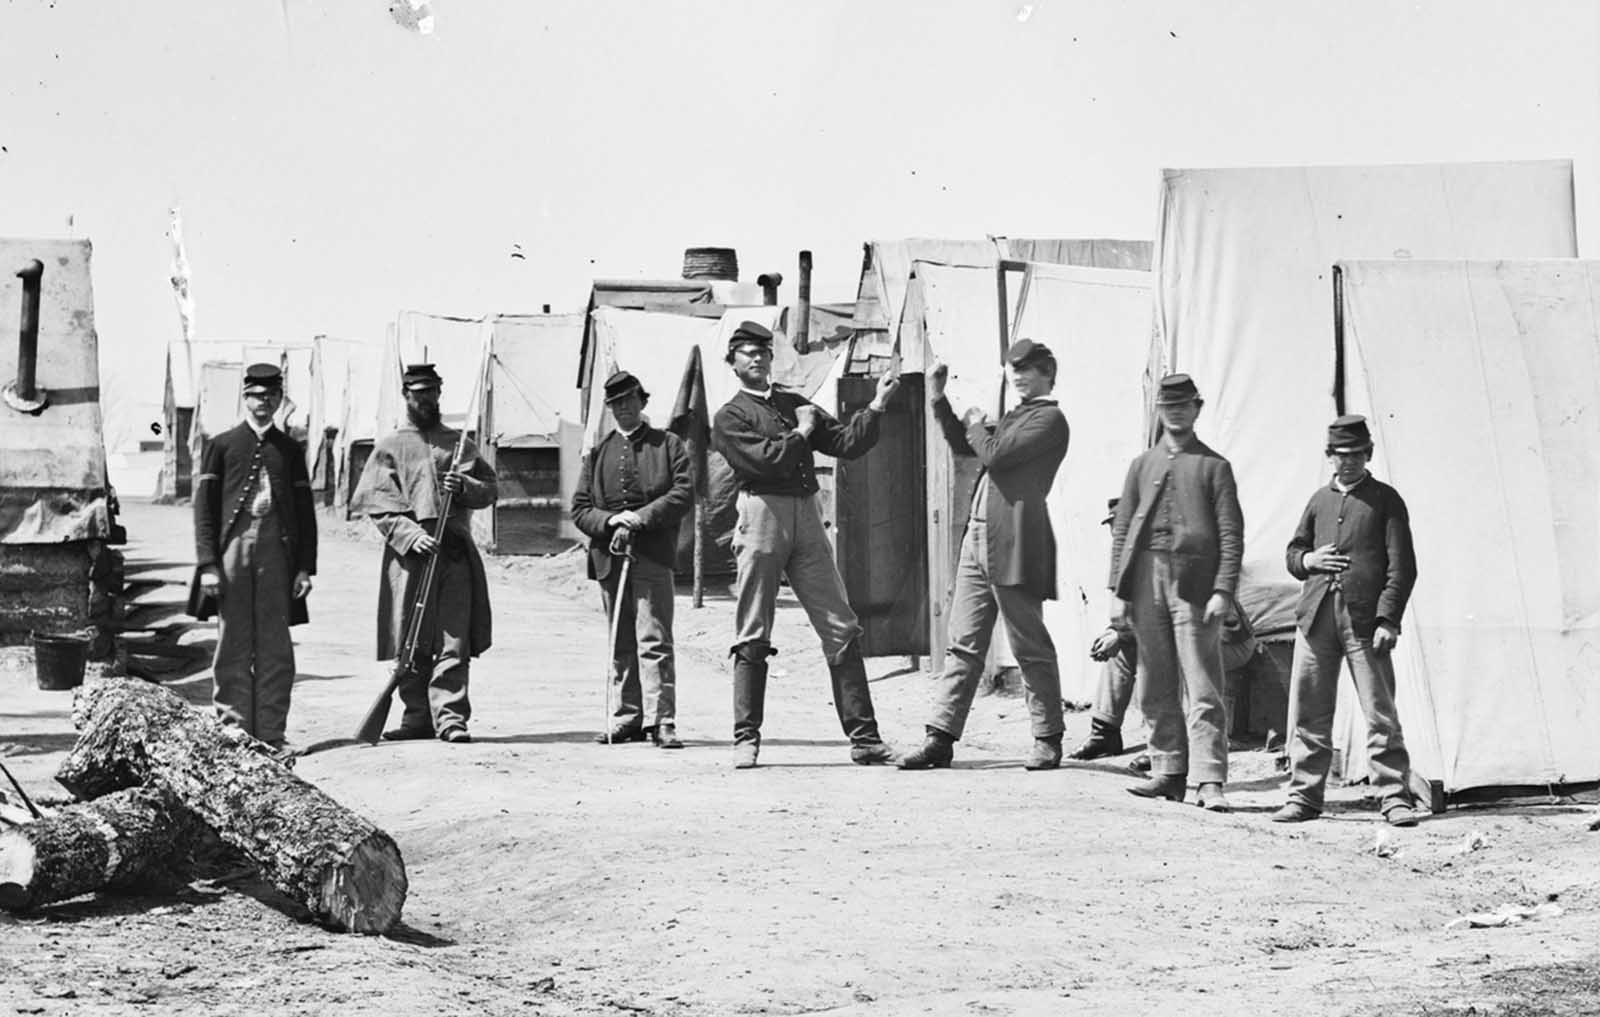 Soldiers boxing in a Union camp in Petersburg, Virginia, in April of 1865.